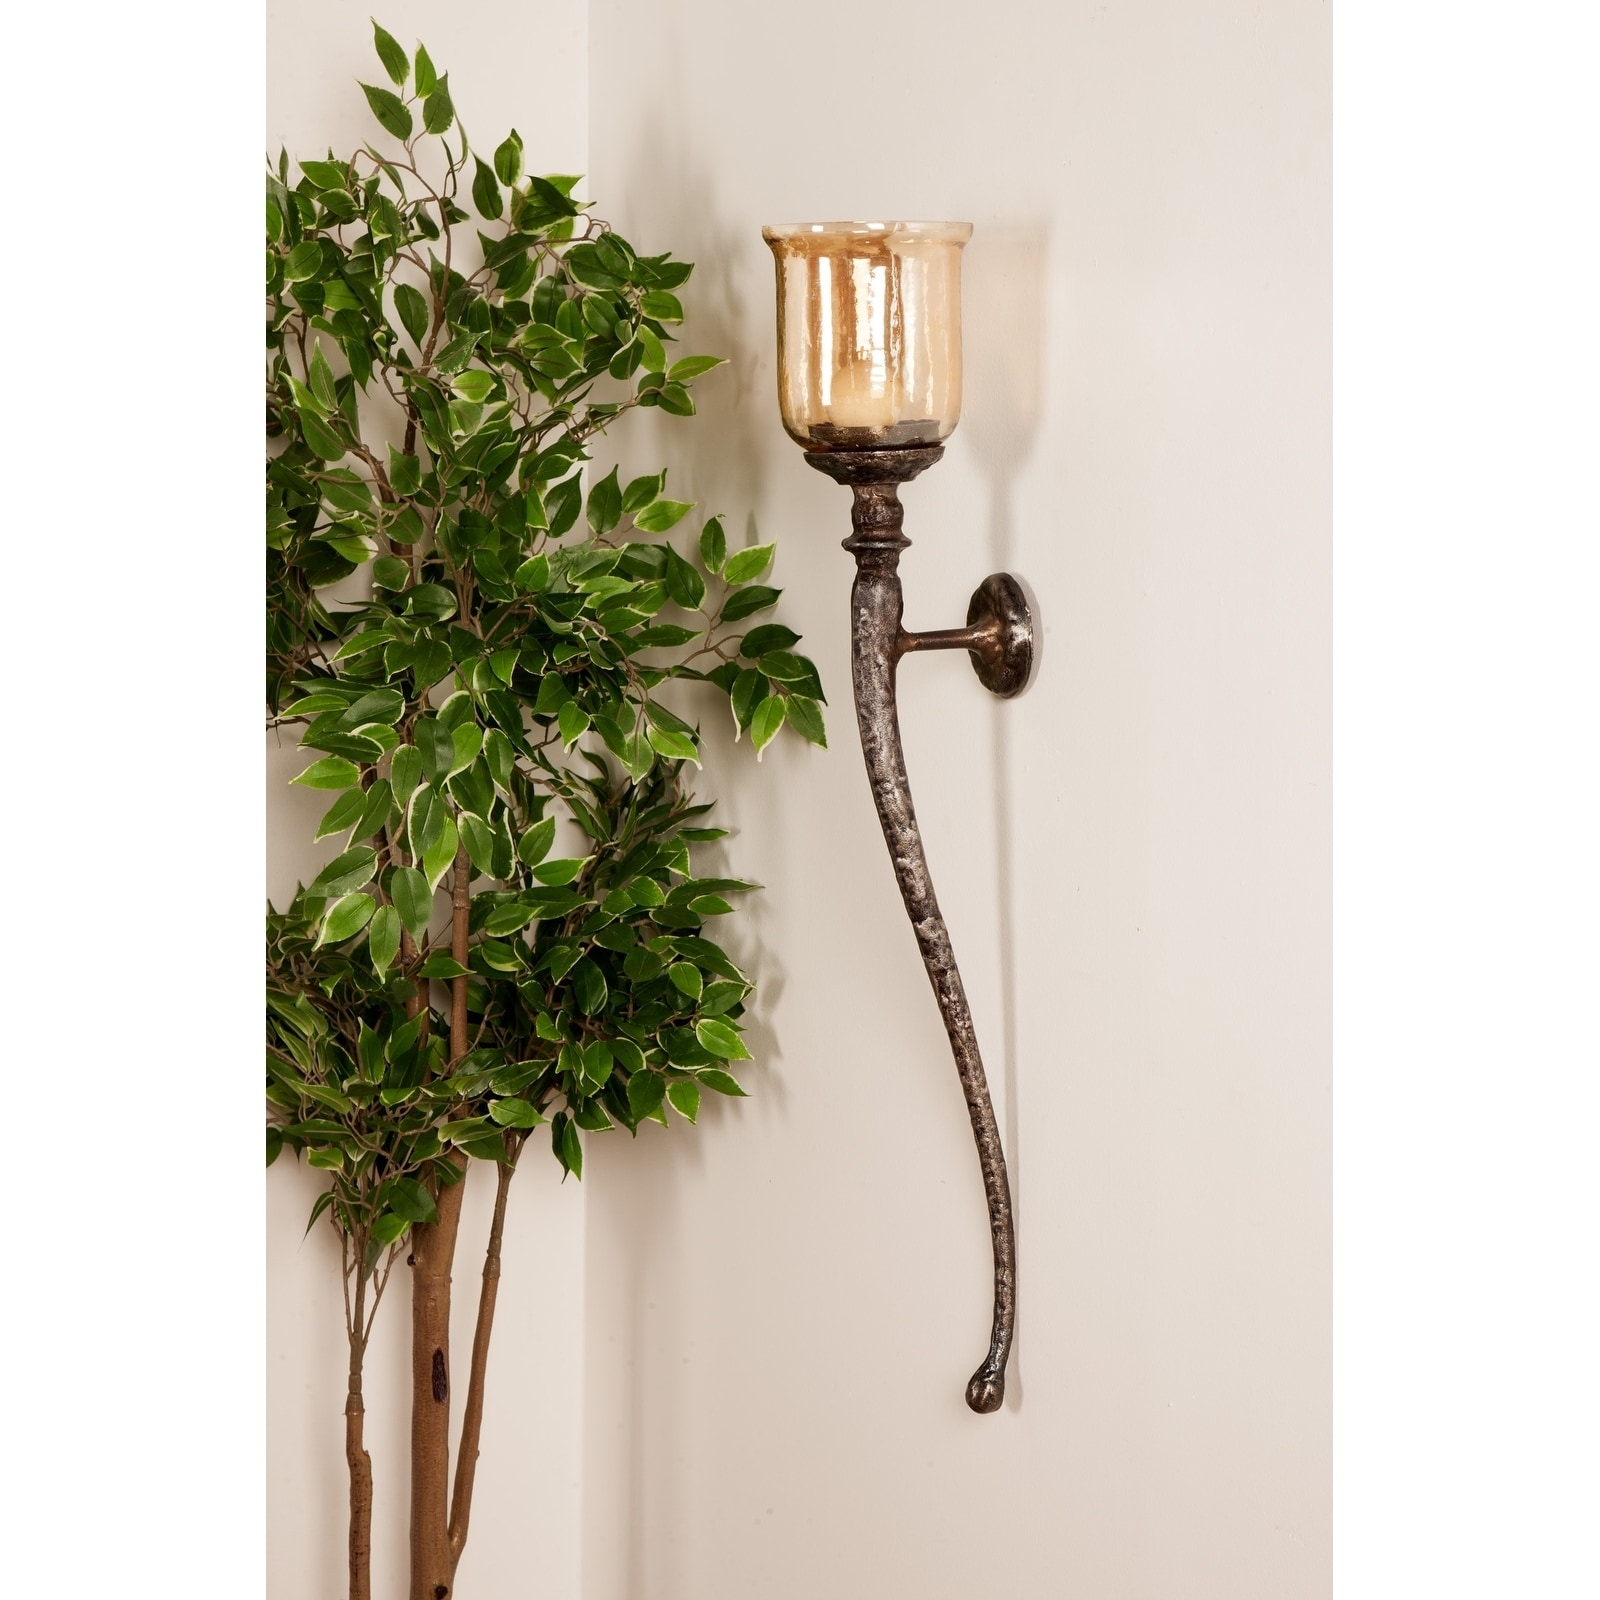 Shop set of 2 traditional 34 inch wall mounted candle holders free shipping today overstock com 20460387